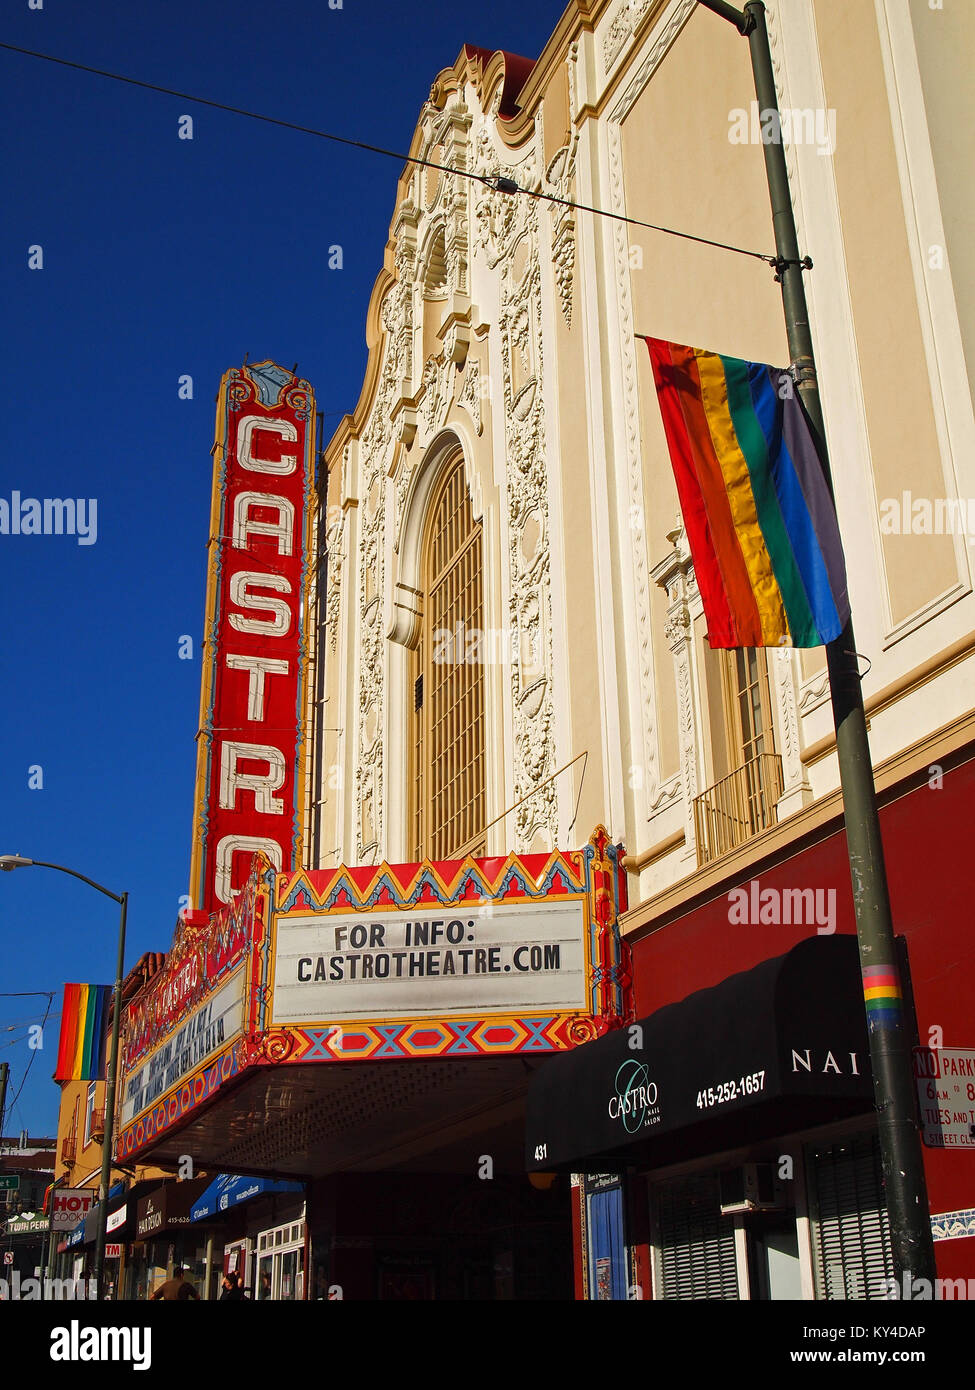 castro theater, castro street, san francisco stock photo: 171587326